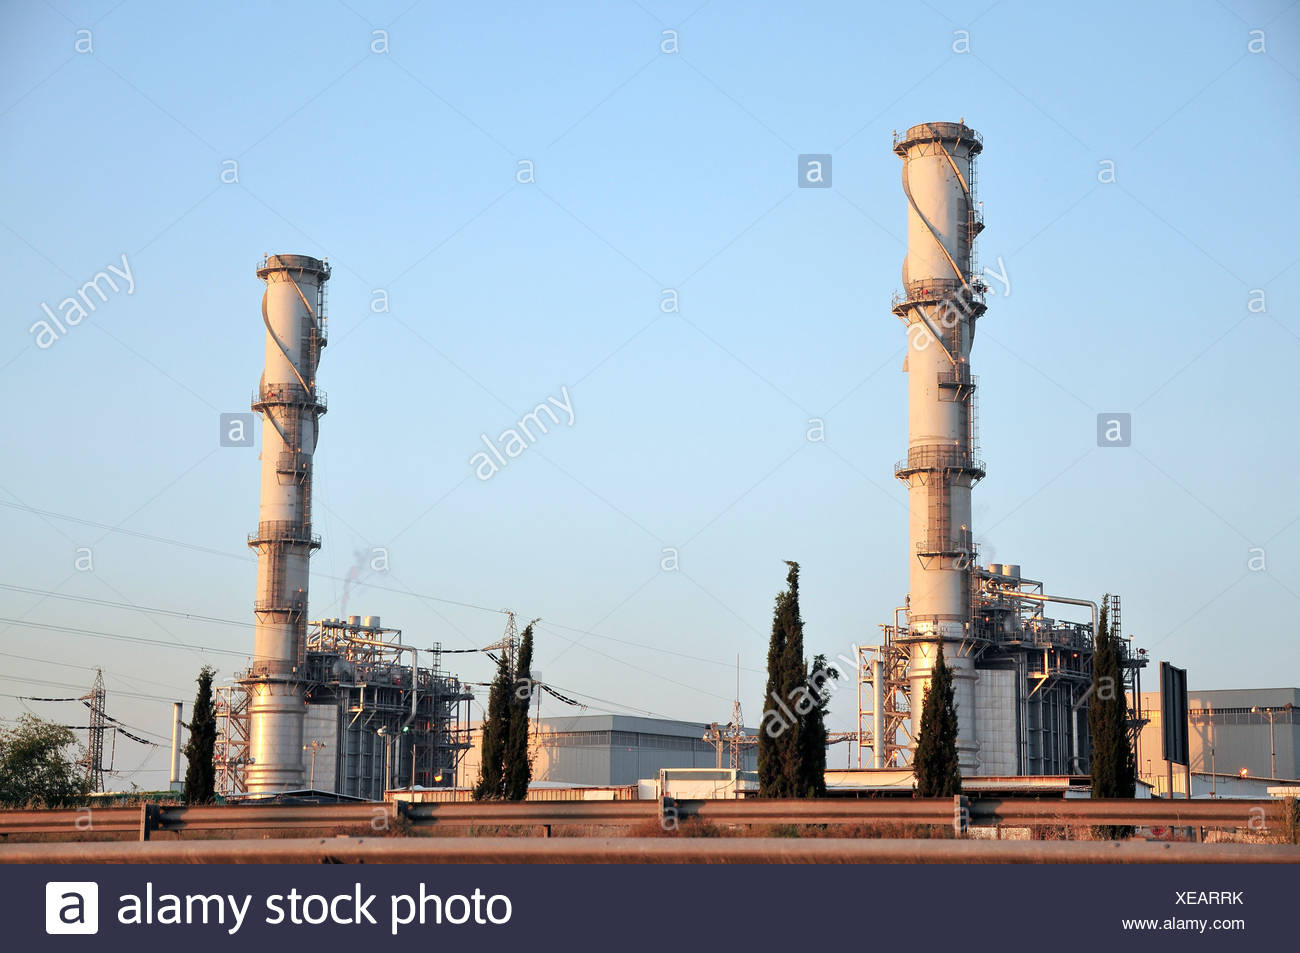 A natural gas operated powerstation Photographed in Israel - Stock Image